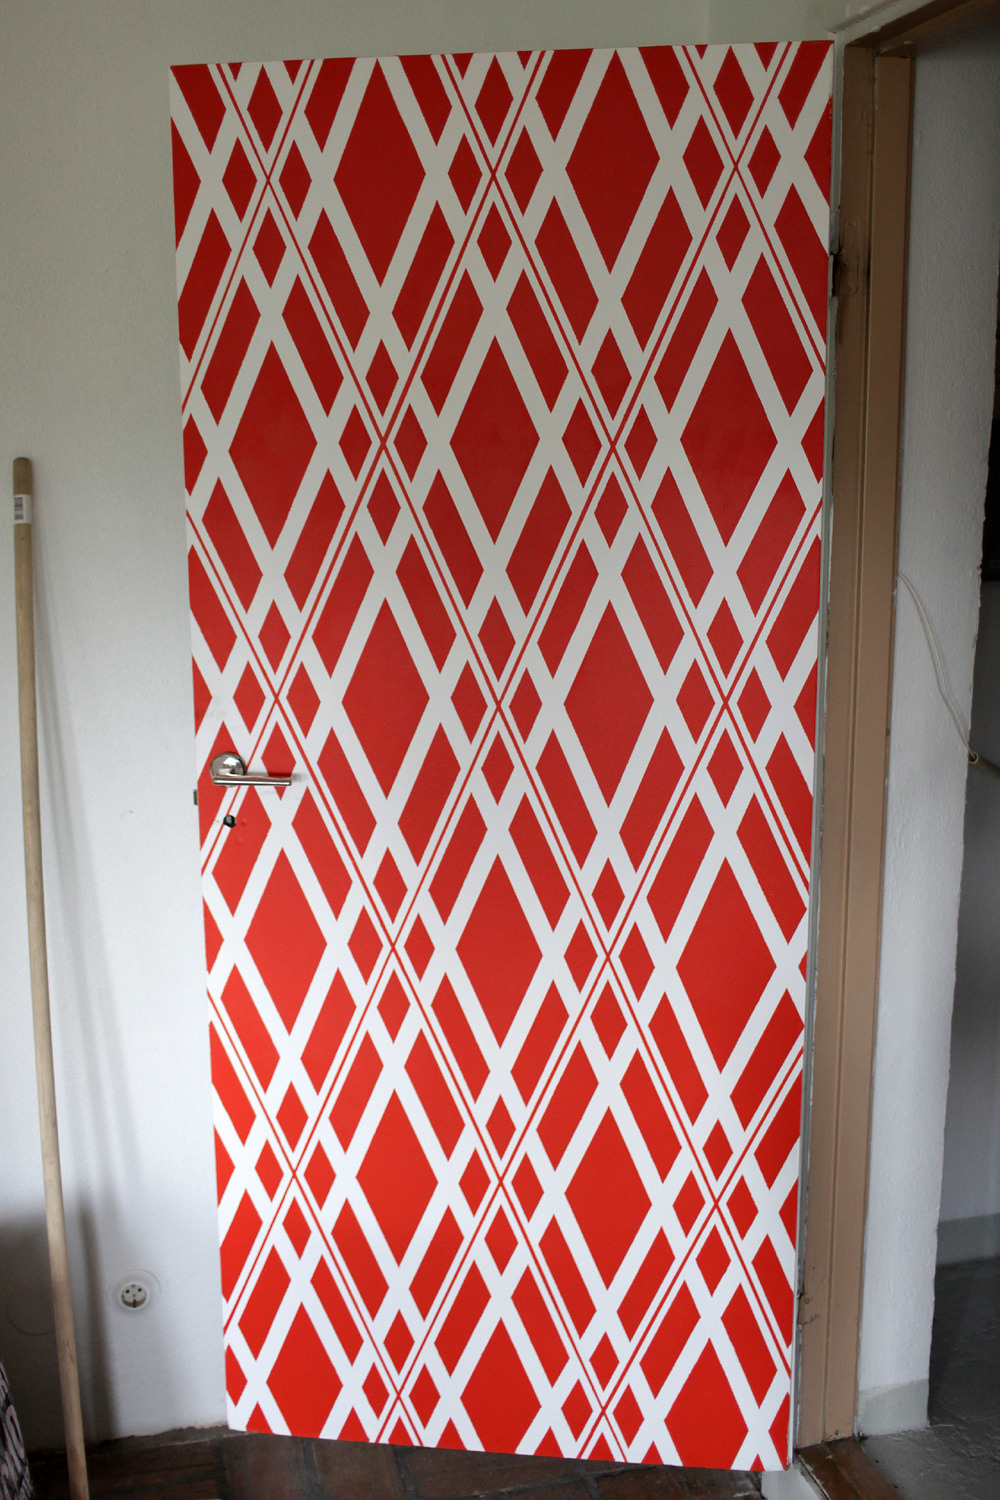 Anotherblogg_Anna_Lidström_DIY_Polka_Painted_Door9.JPG